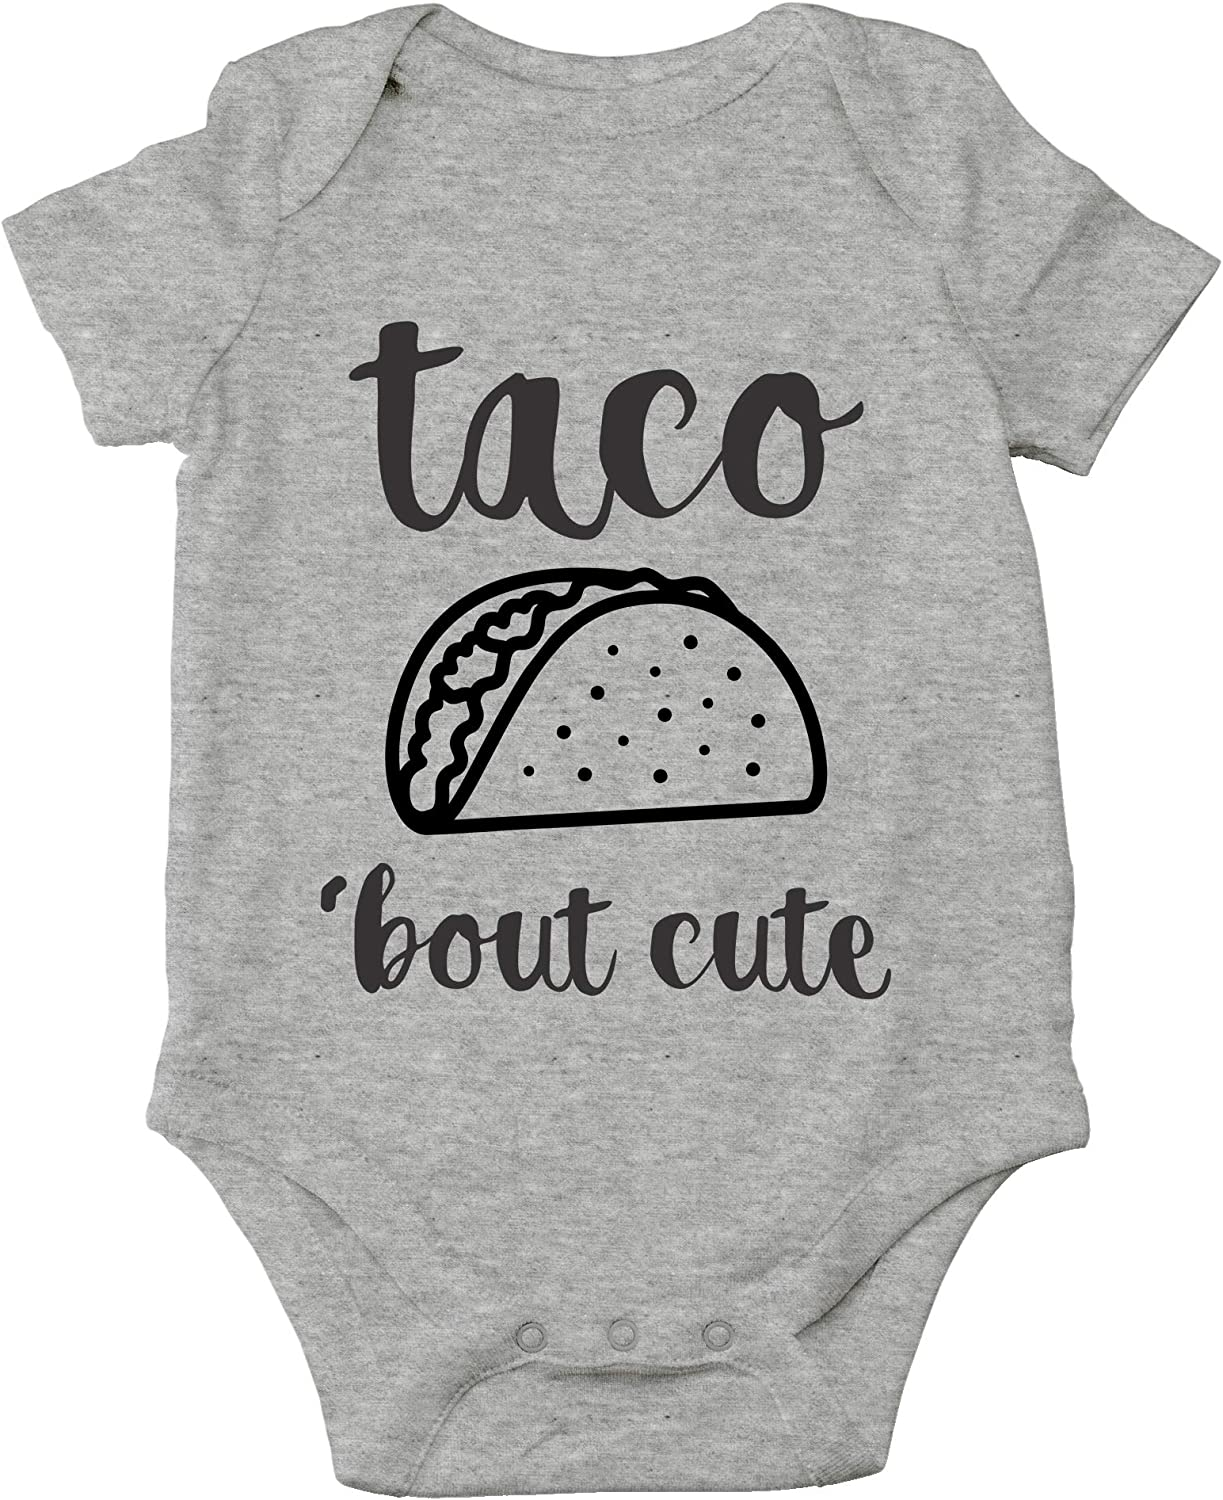 AW Fashions Taco 'Bout Cute - Funny Lil Adorable Tacos Mexican Food Lover - Cute One-Piece Infant Baby Bodysuit